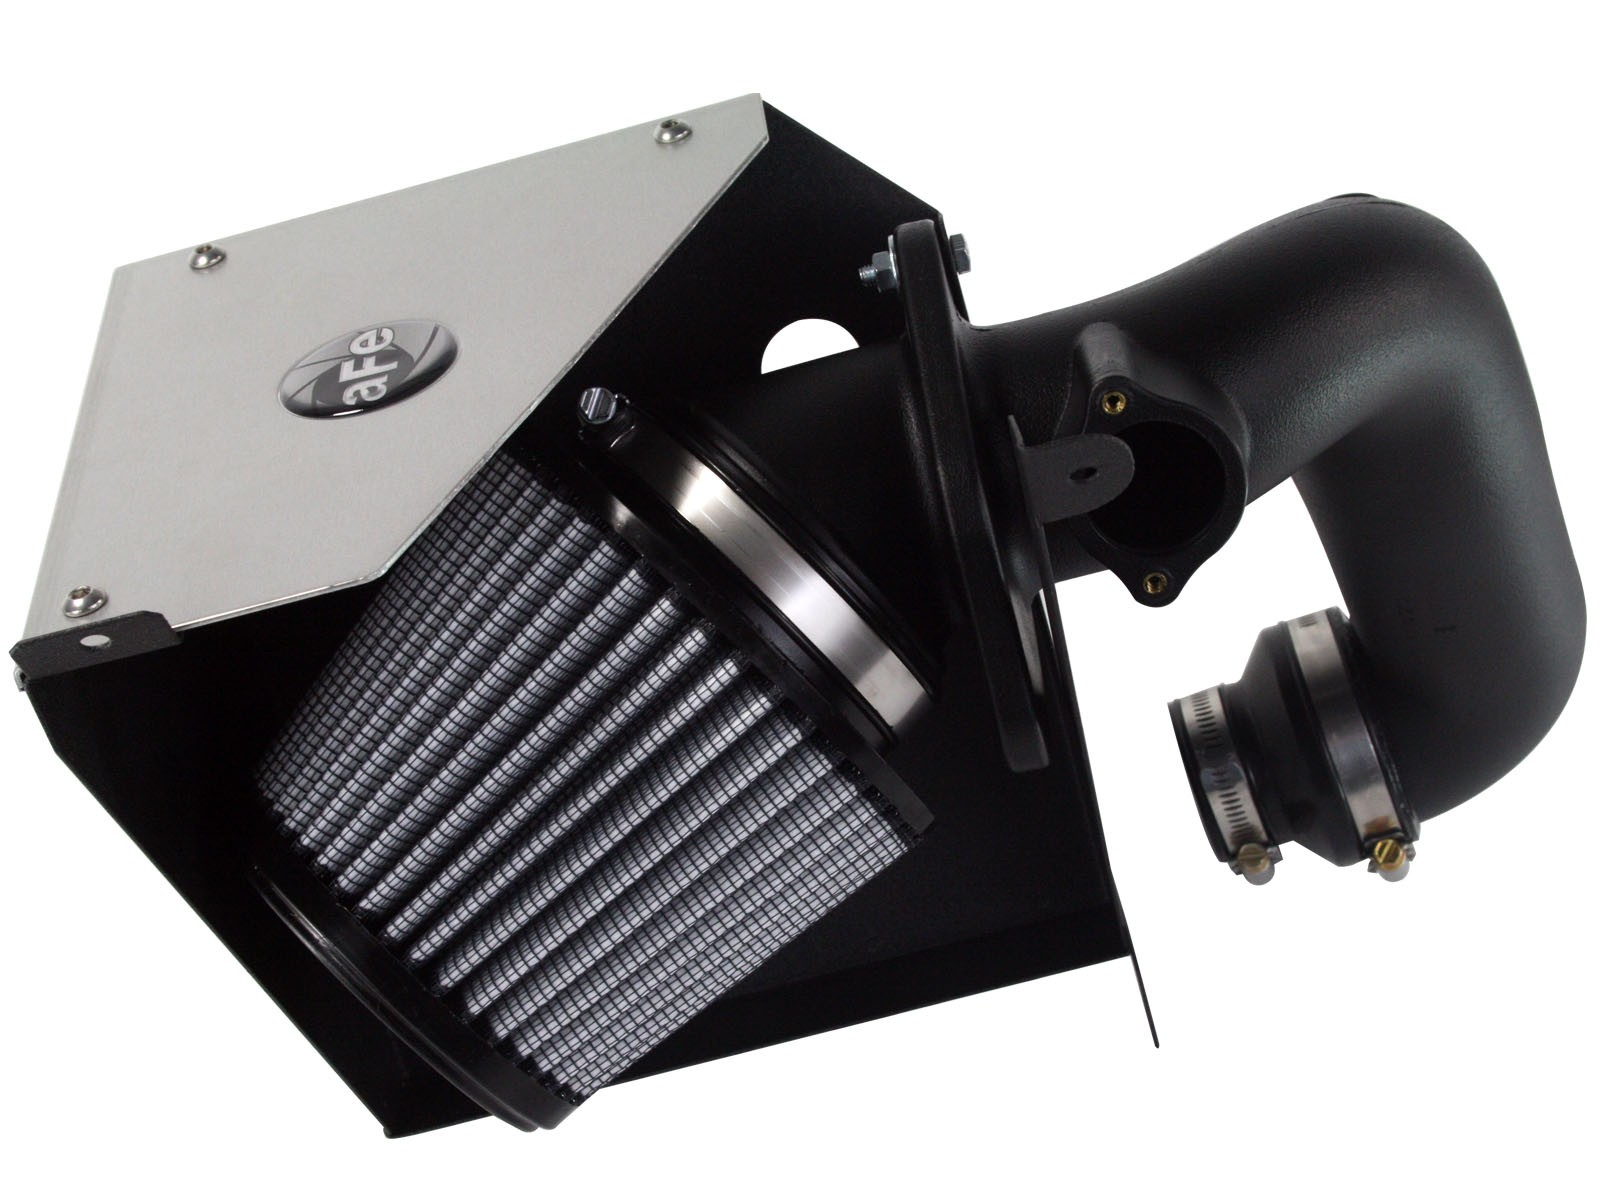 aFe POWER 51-10322 Magnum FORCE Stage-2 Pro DRY S Cold Air Intake System